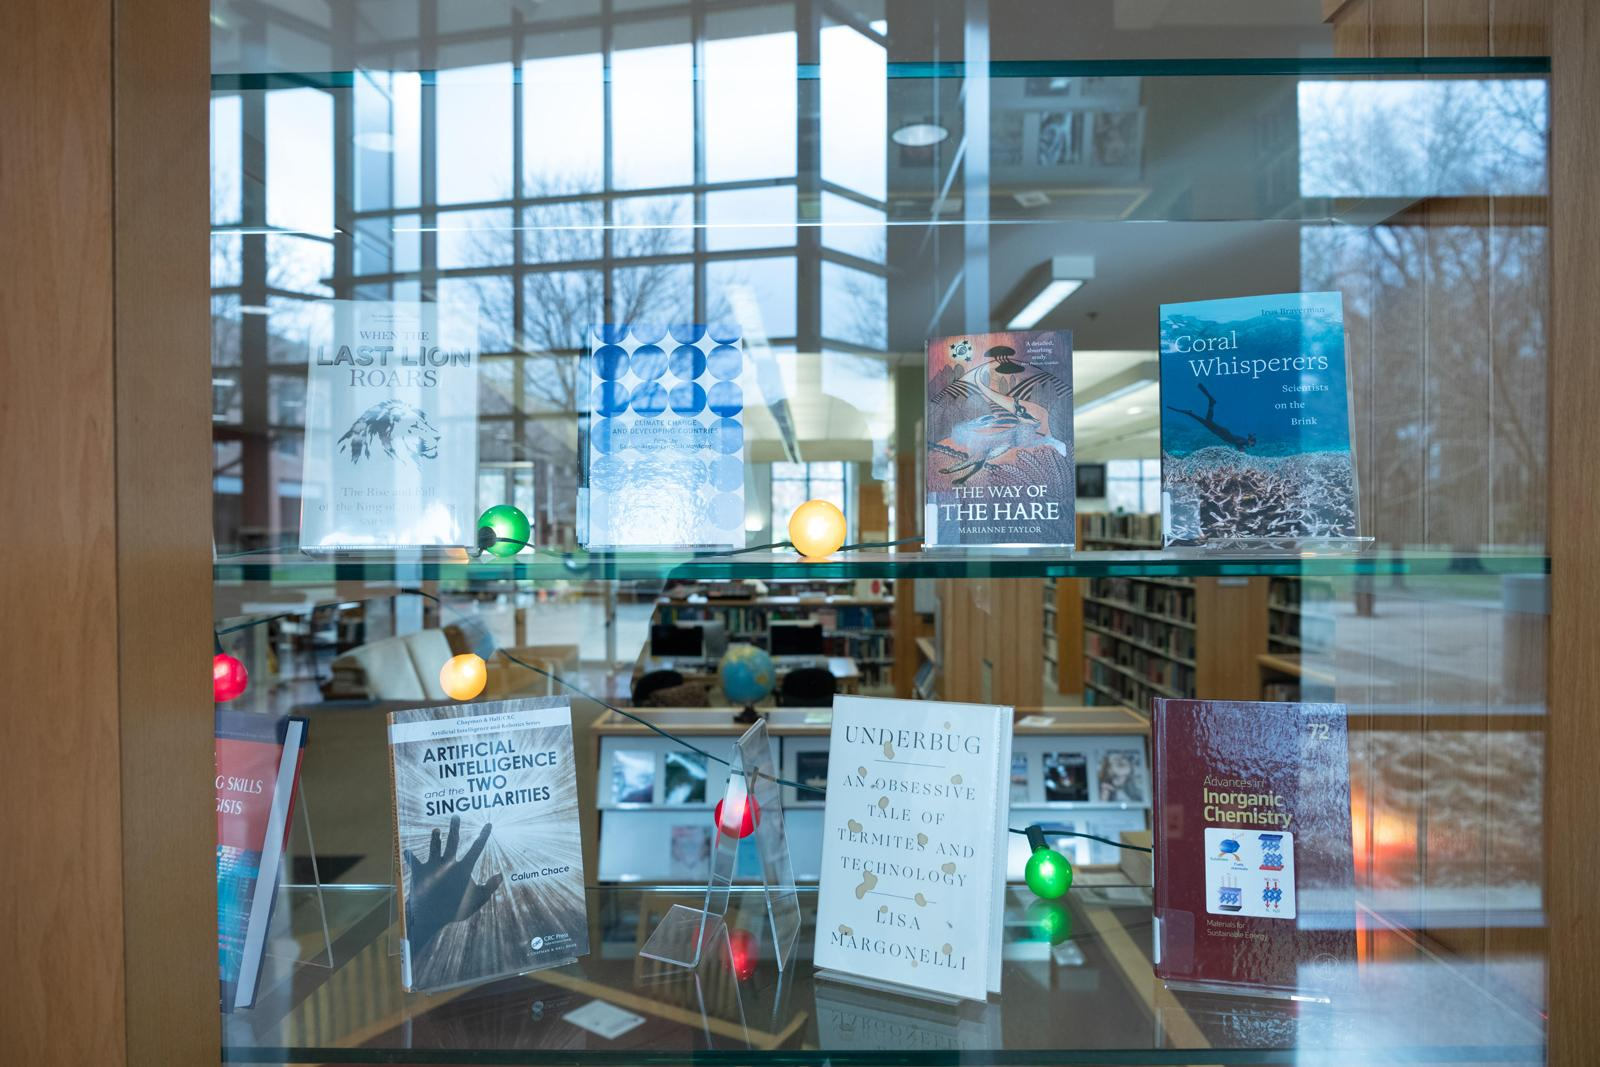 Books are displayed in a glass case in a modern library.